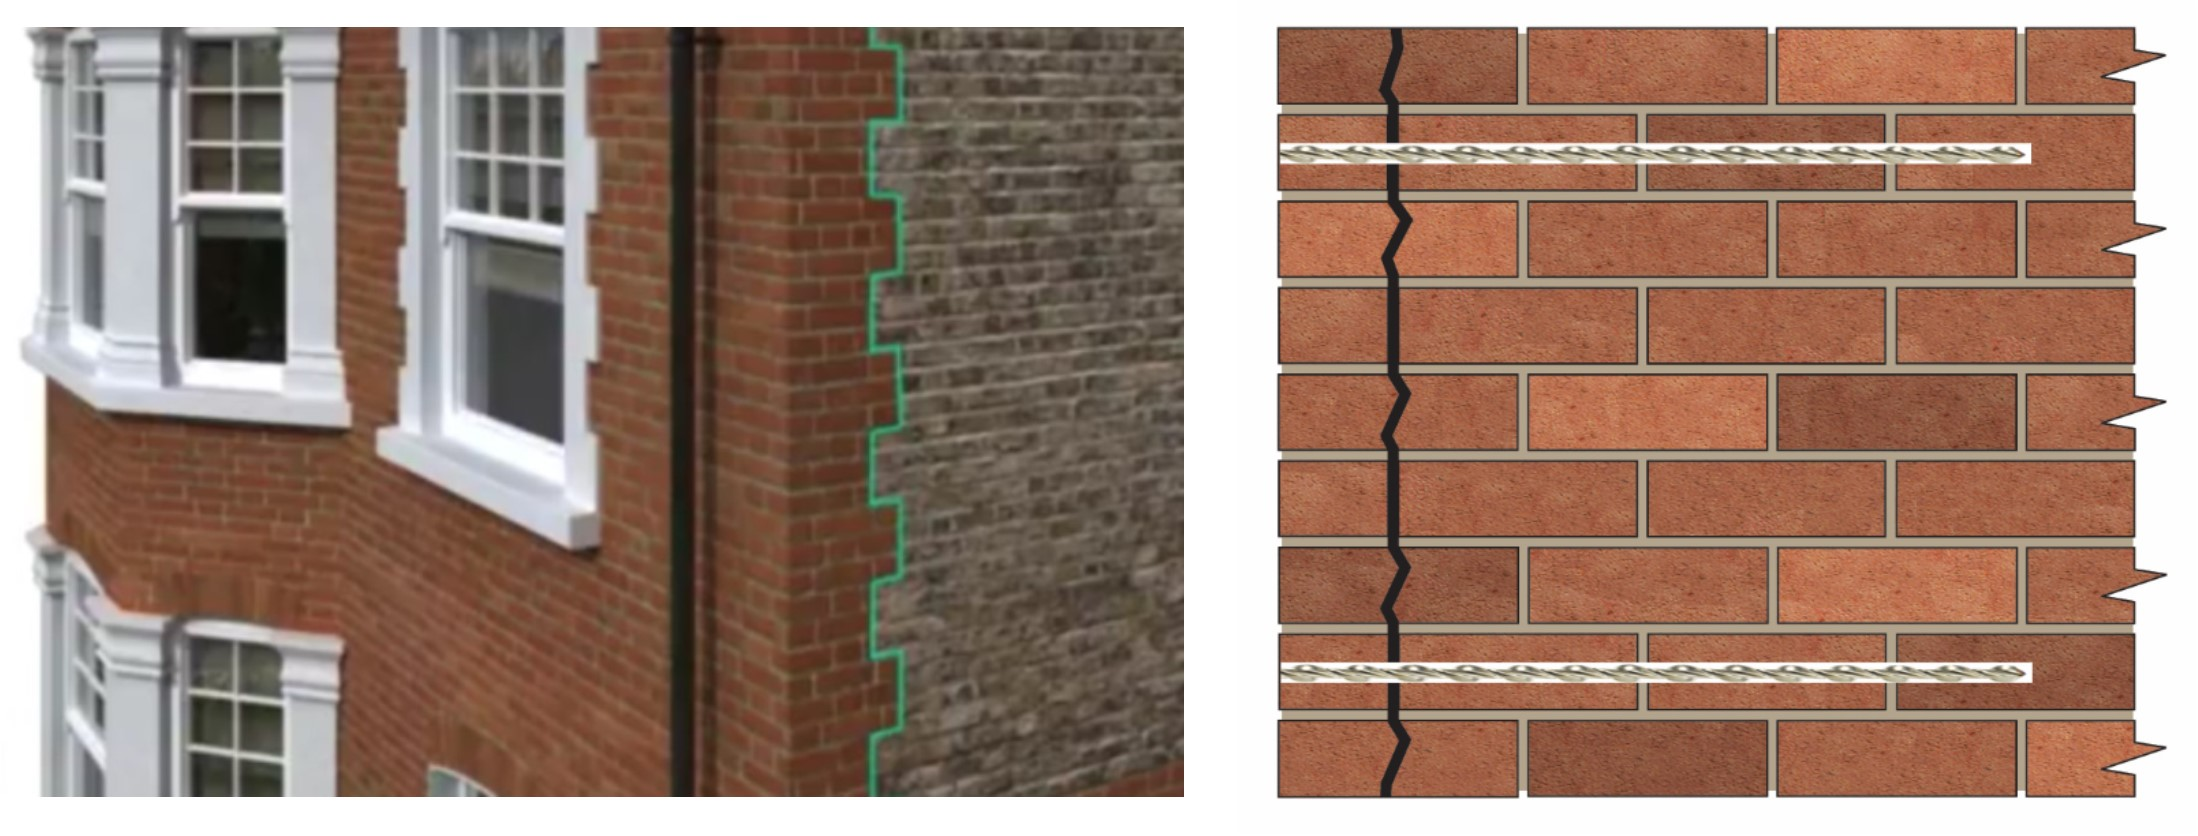 Applications Repairing Cracks Near Corners And Openings